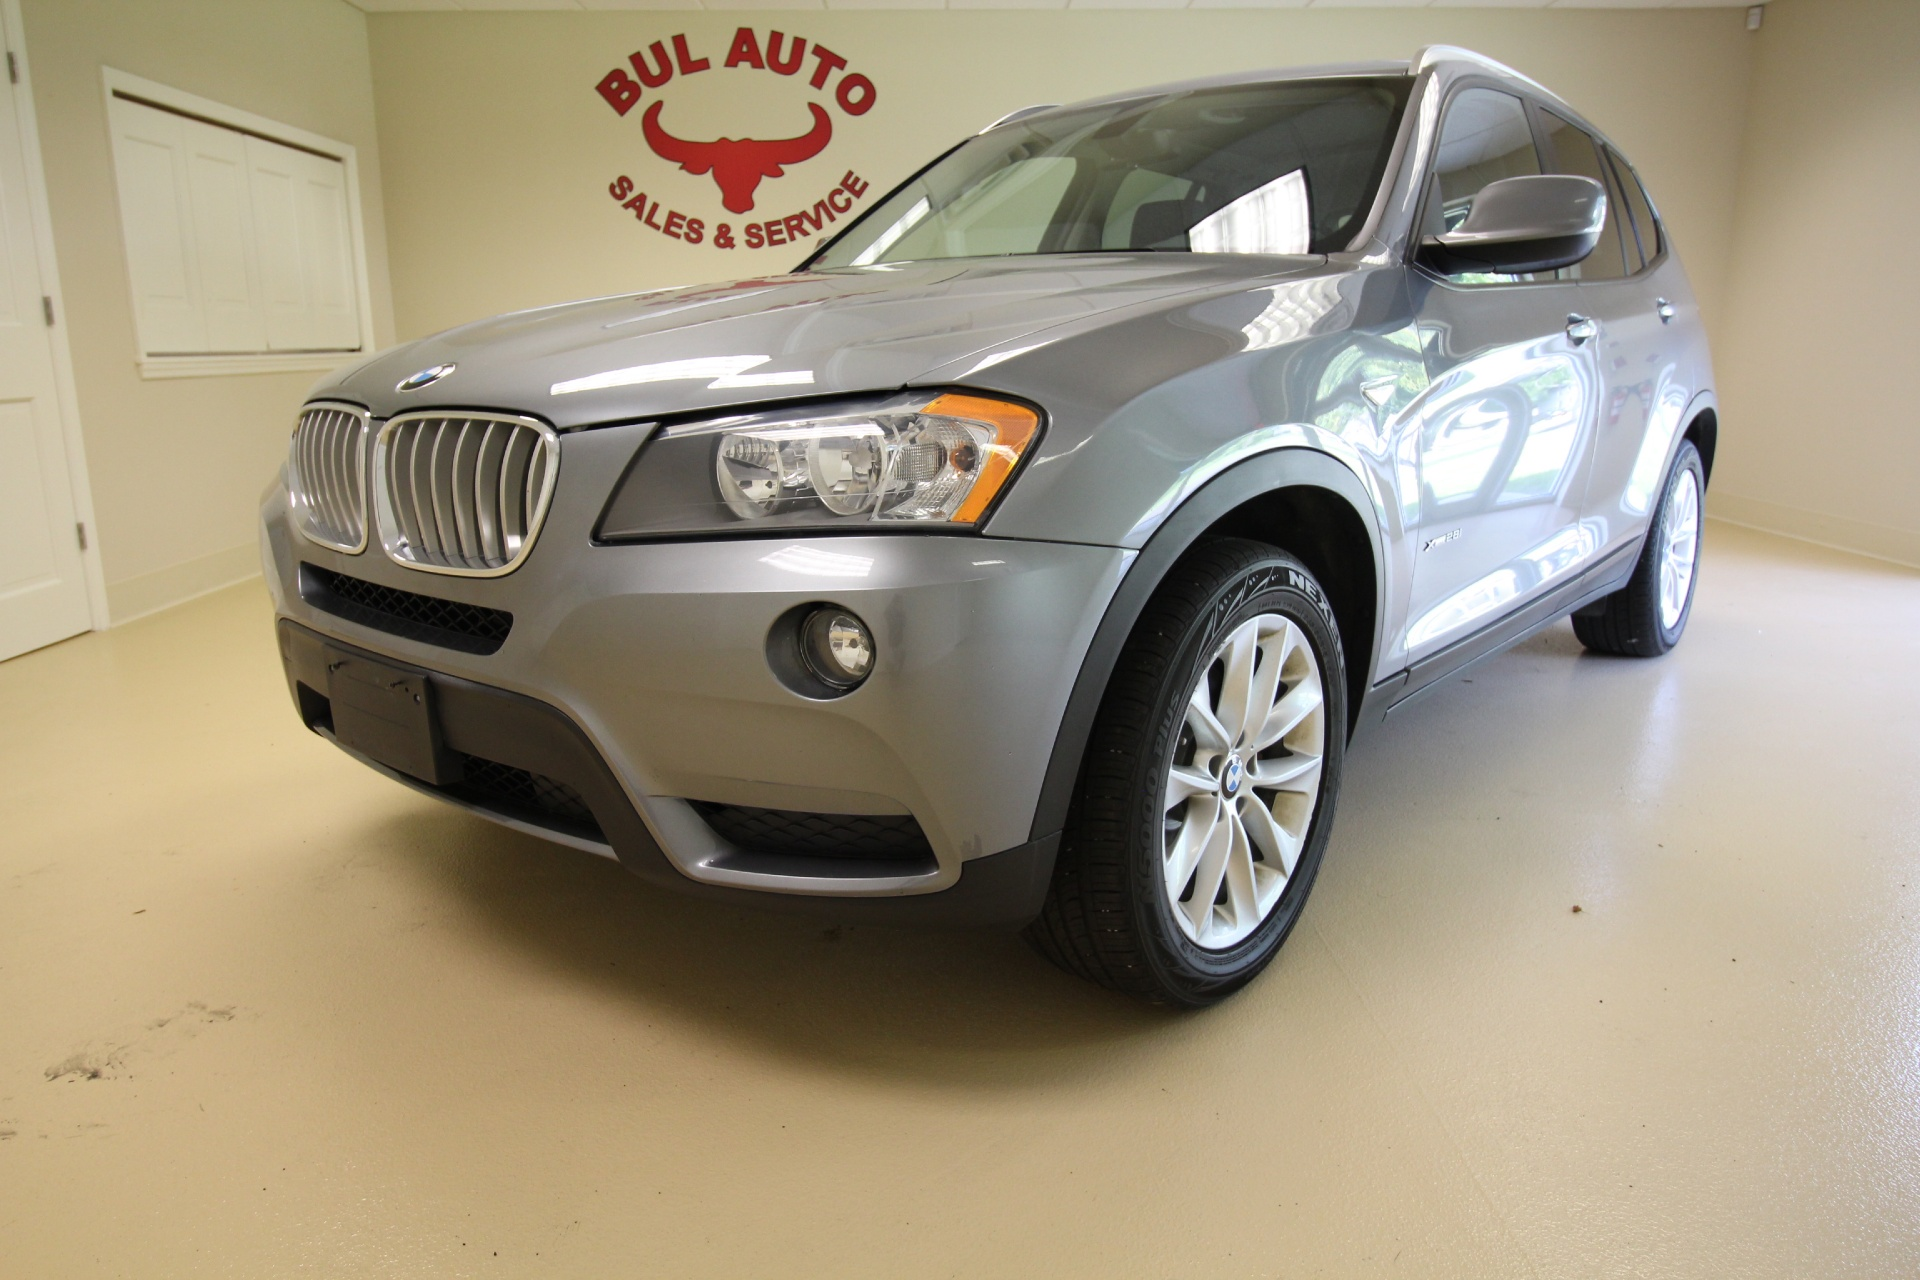 2013 bmw x3 xdrive28i stock 16161 for sale near albany ny ny bmw dealer for sale in albany. Black Bedroom Furniture Sets. Home Design Ideas